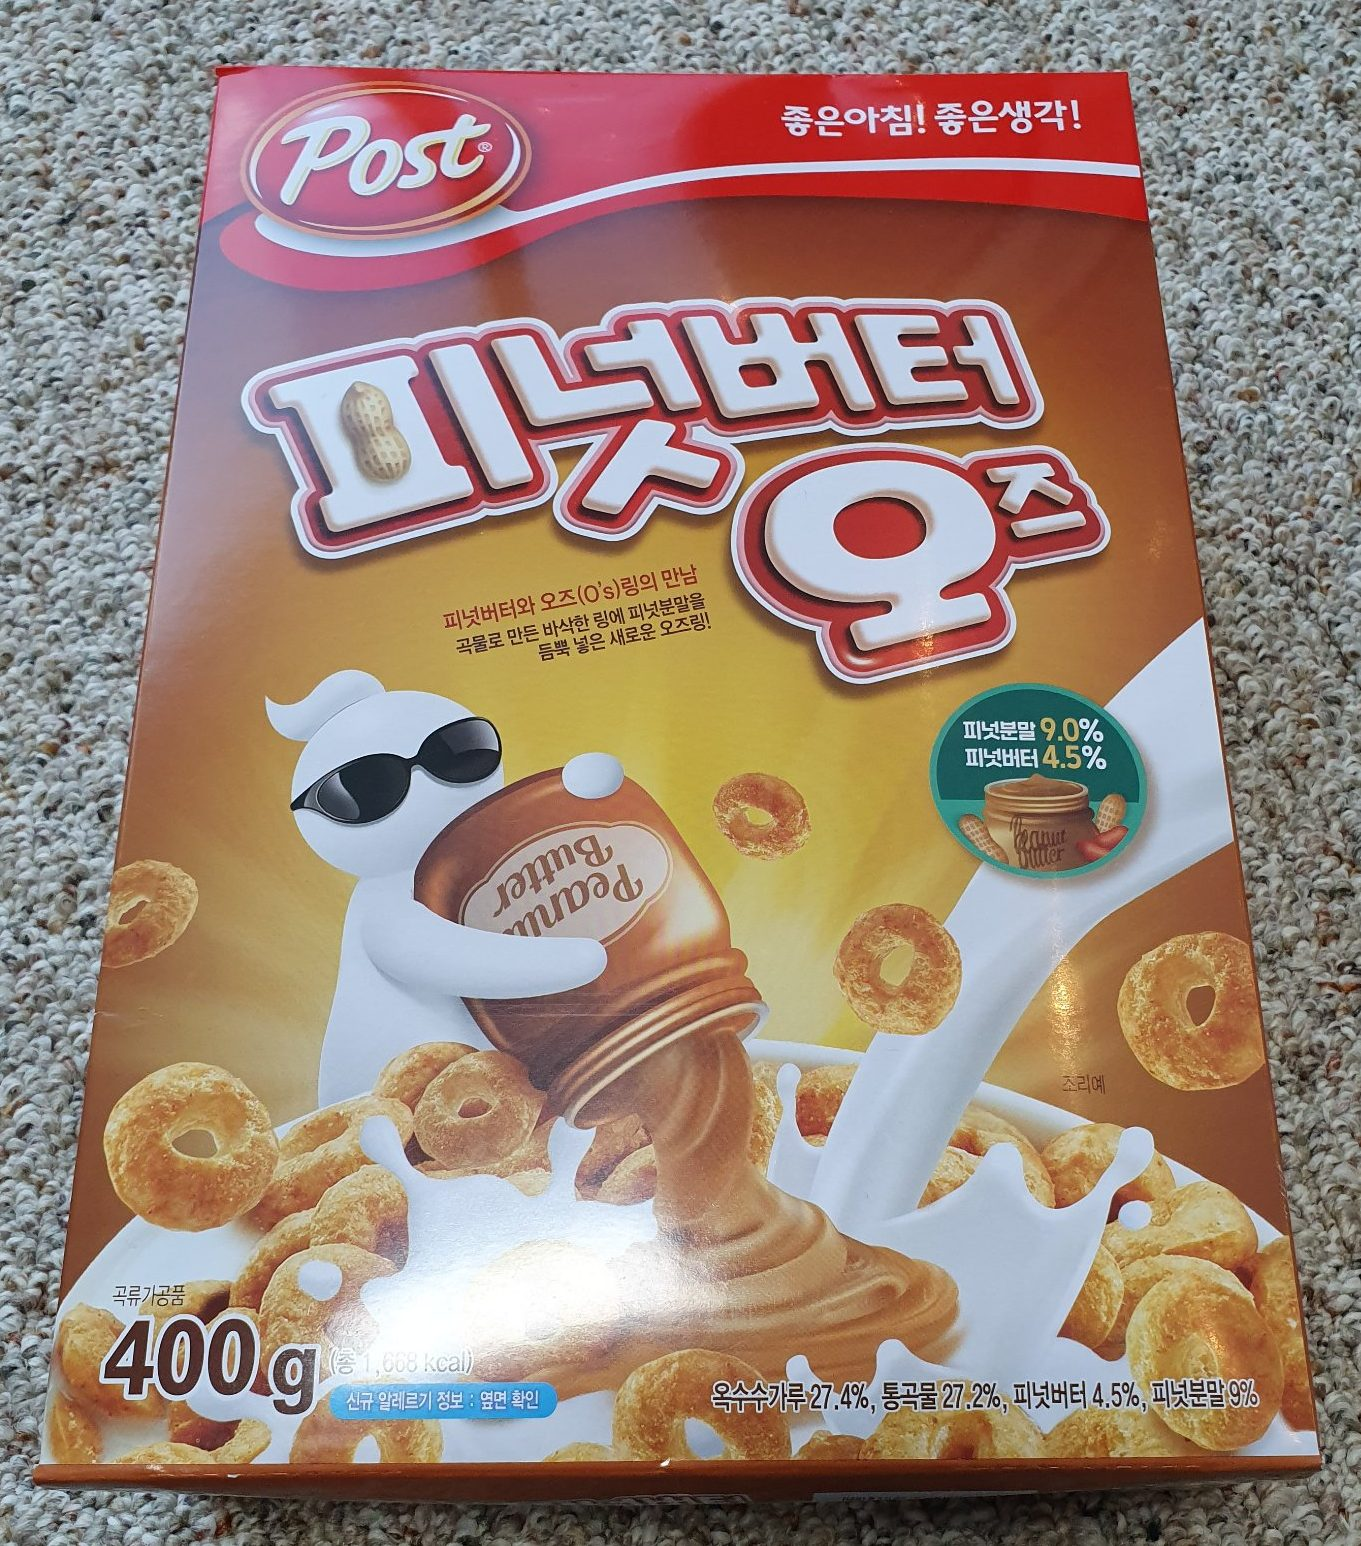 Spooned & Spotted: South Korean RED Oreo O's